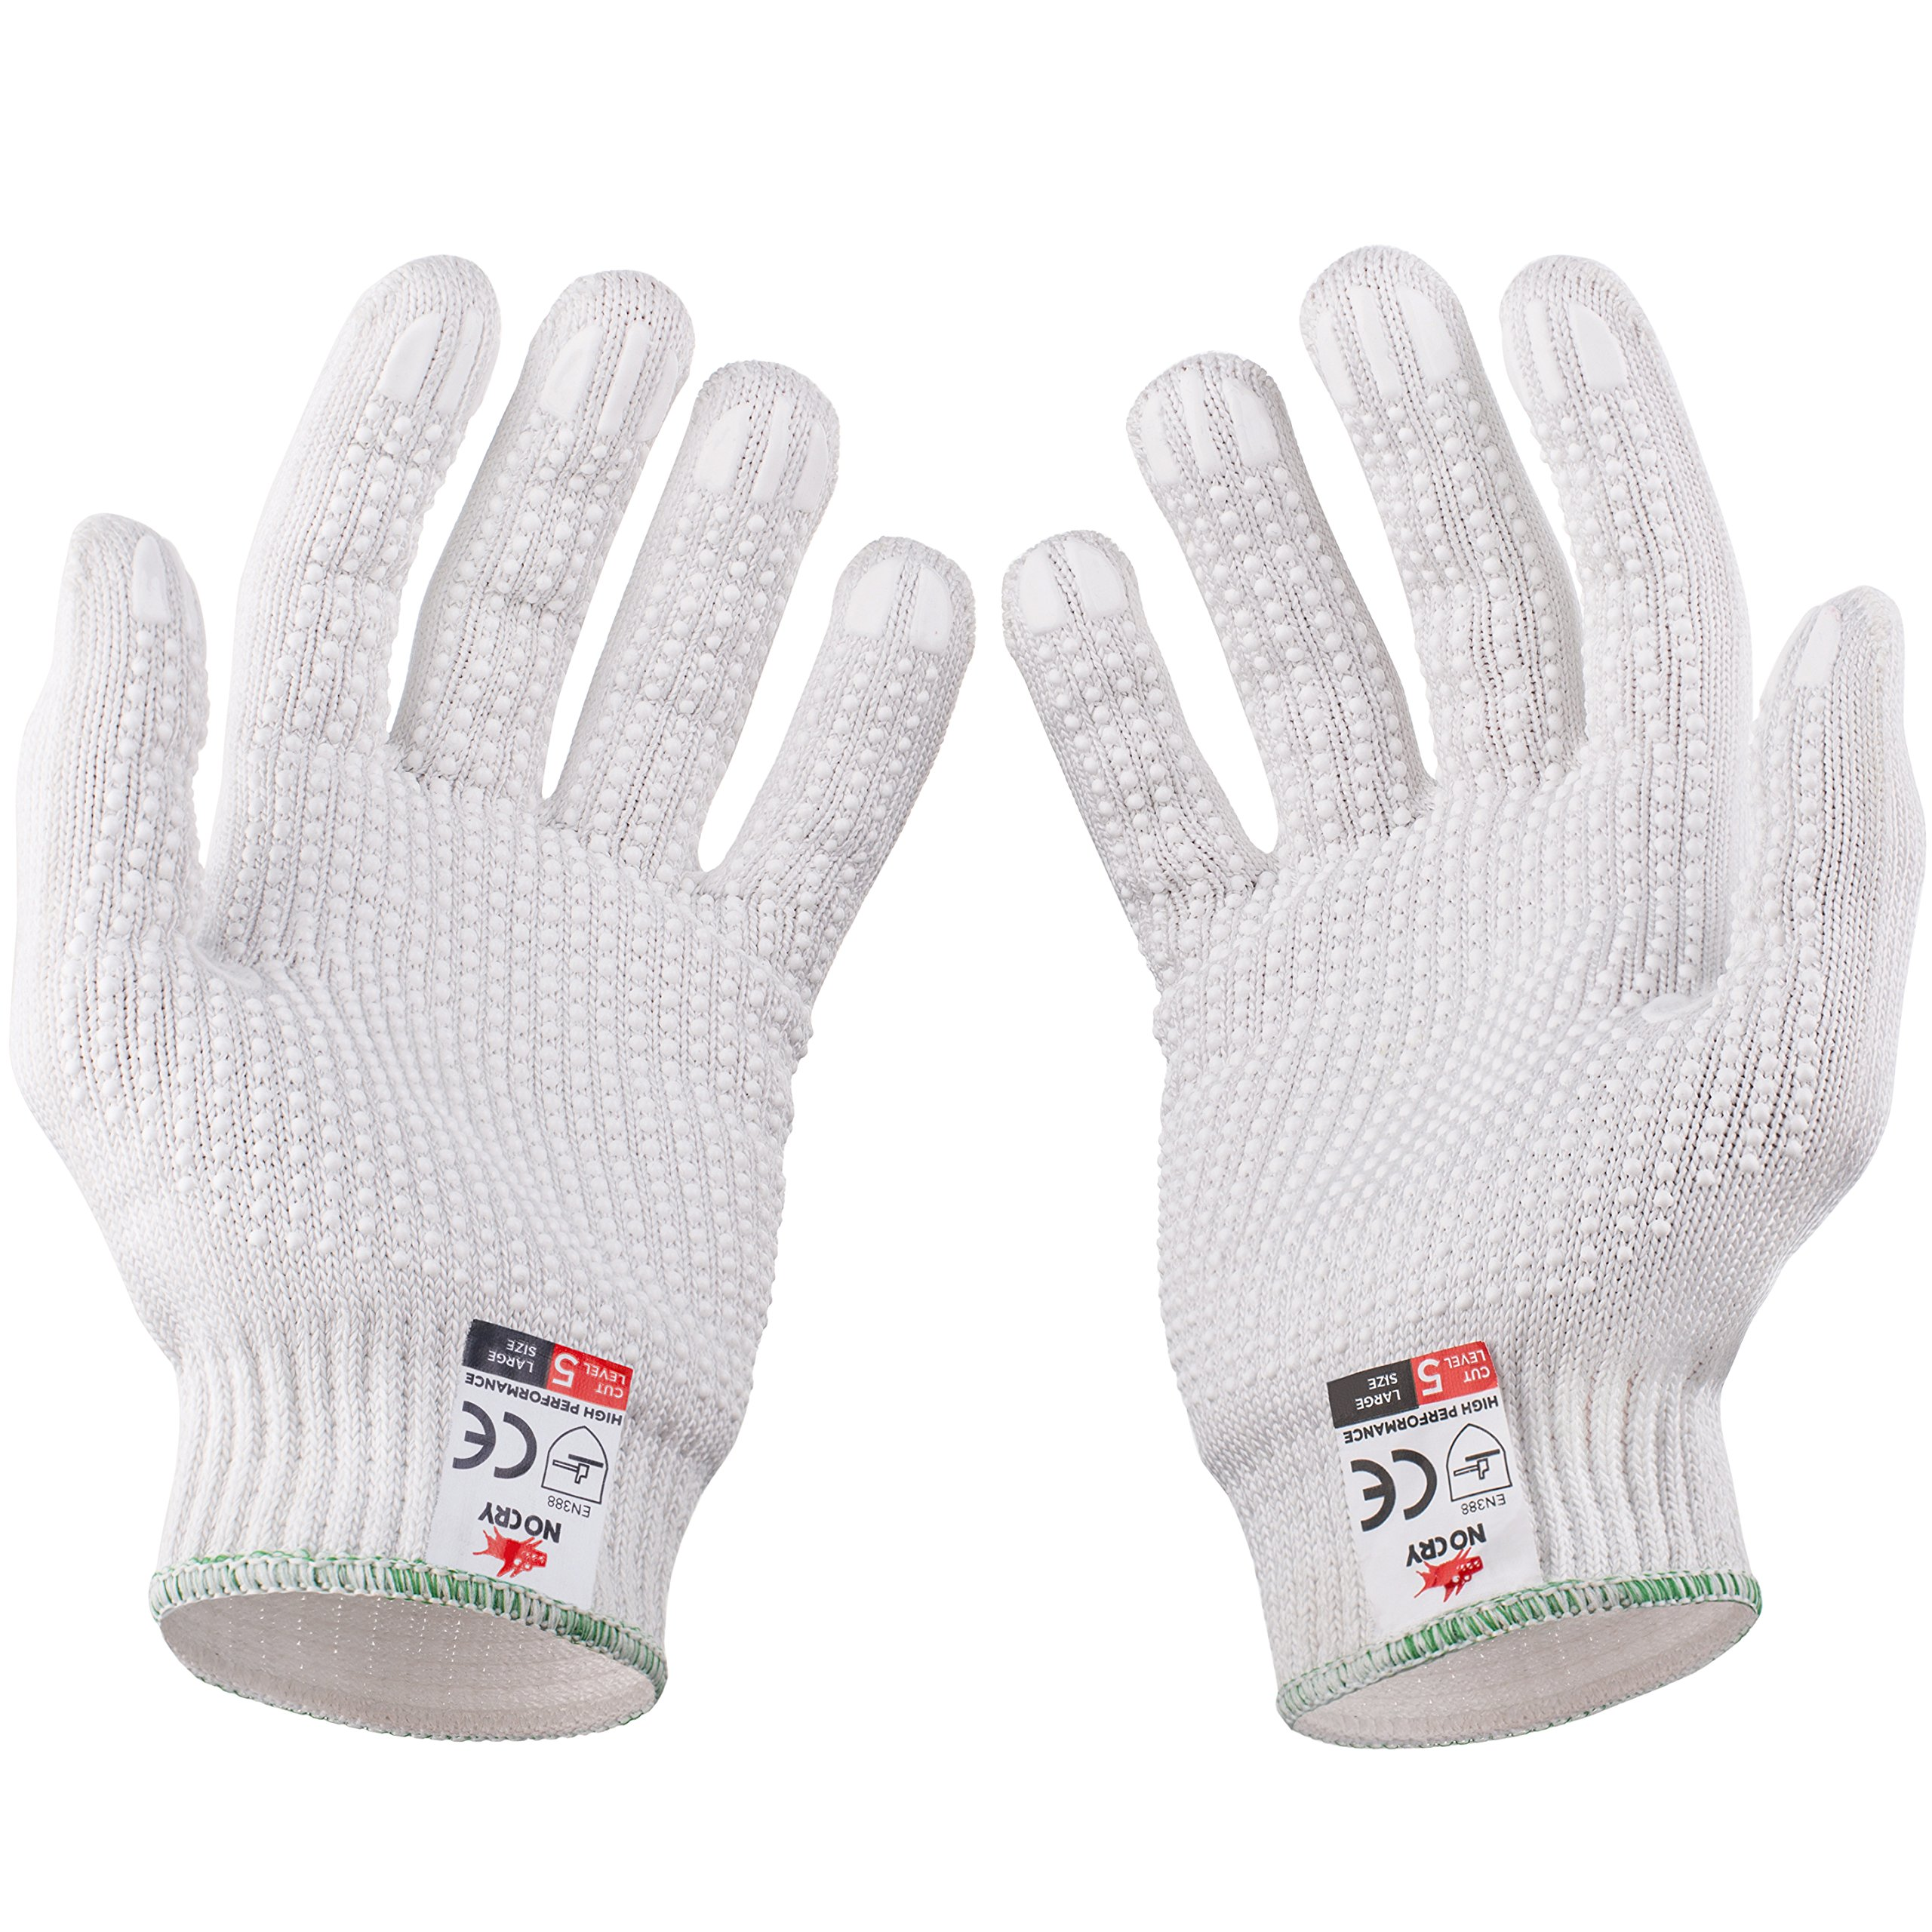 NoCry Cut Resistant Protective Work Gloves with Rubber Grip Dots. Tough and Durable Stainless Steel Material, EN388 Certified. 1 Pair. White, Size Large by NoCry (Image #8)